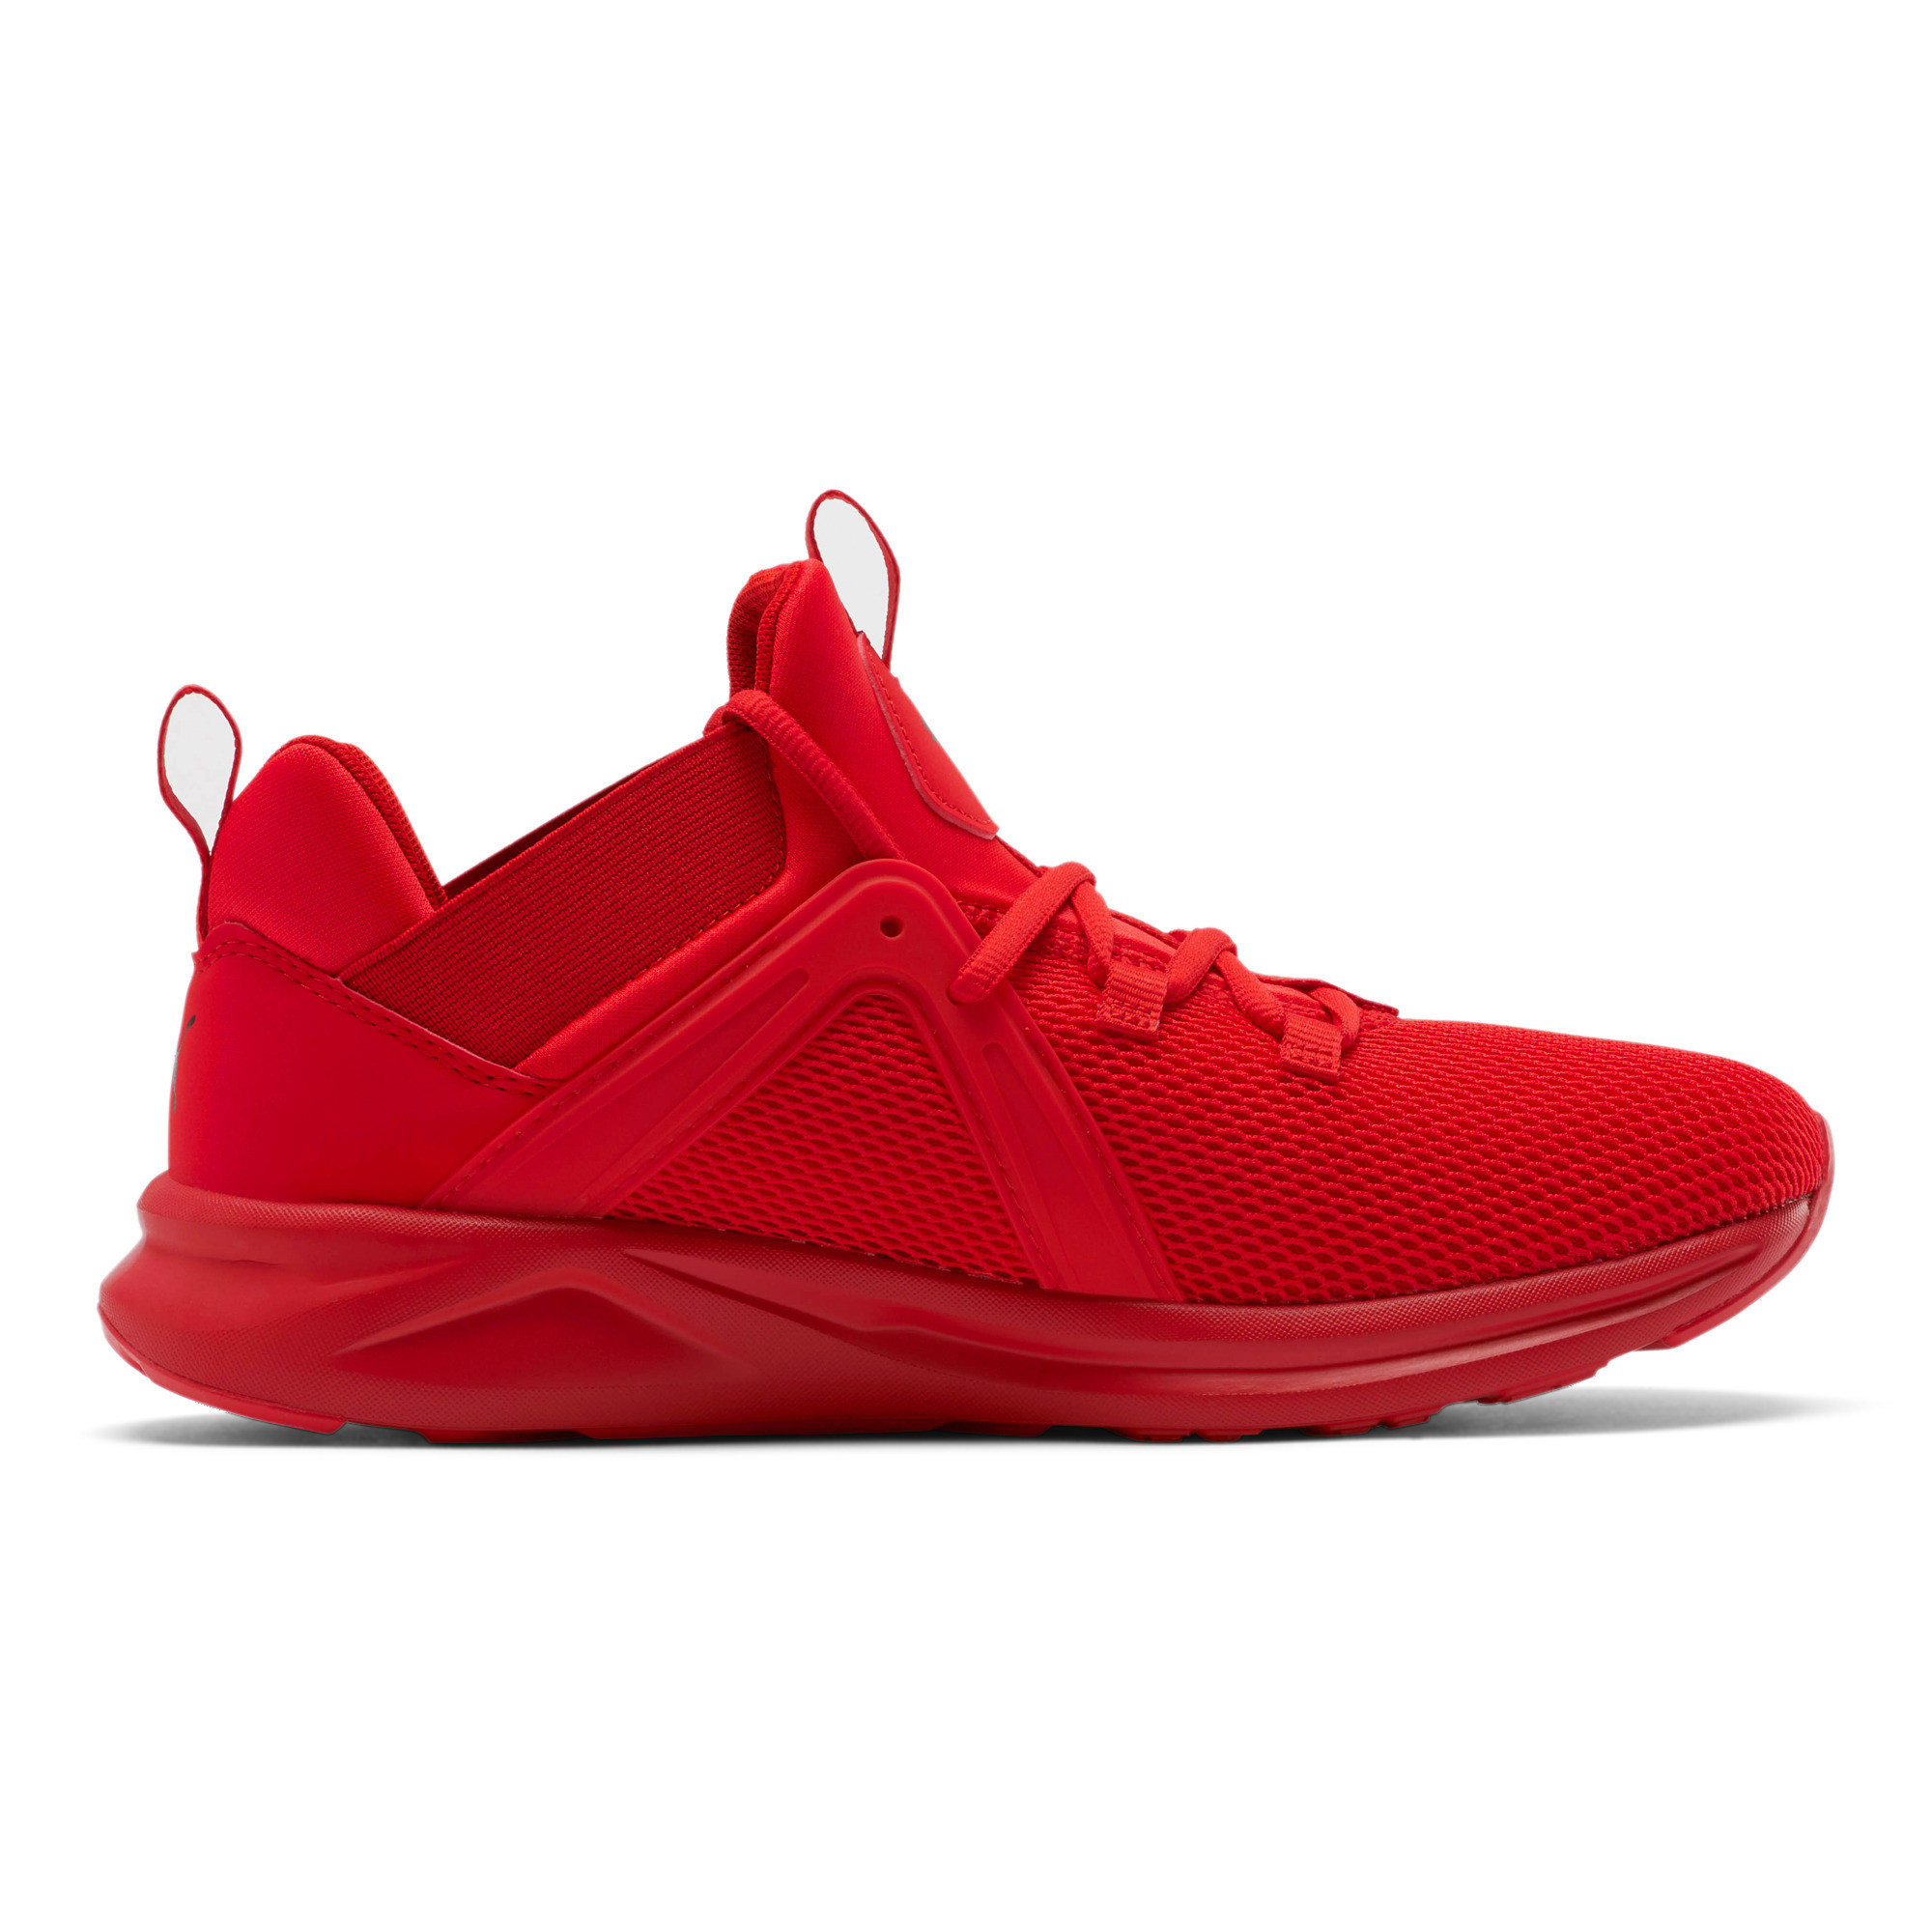 PUMA-Men-039-s-Enzo-2-Training-Shoes thumbnail 6